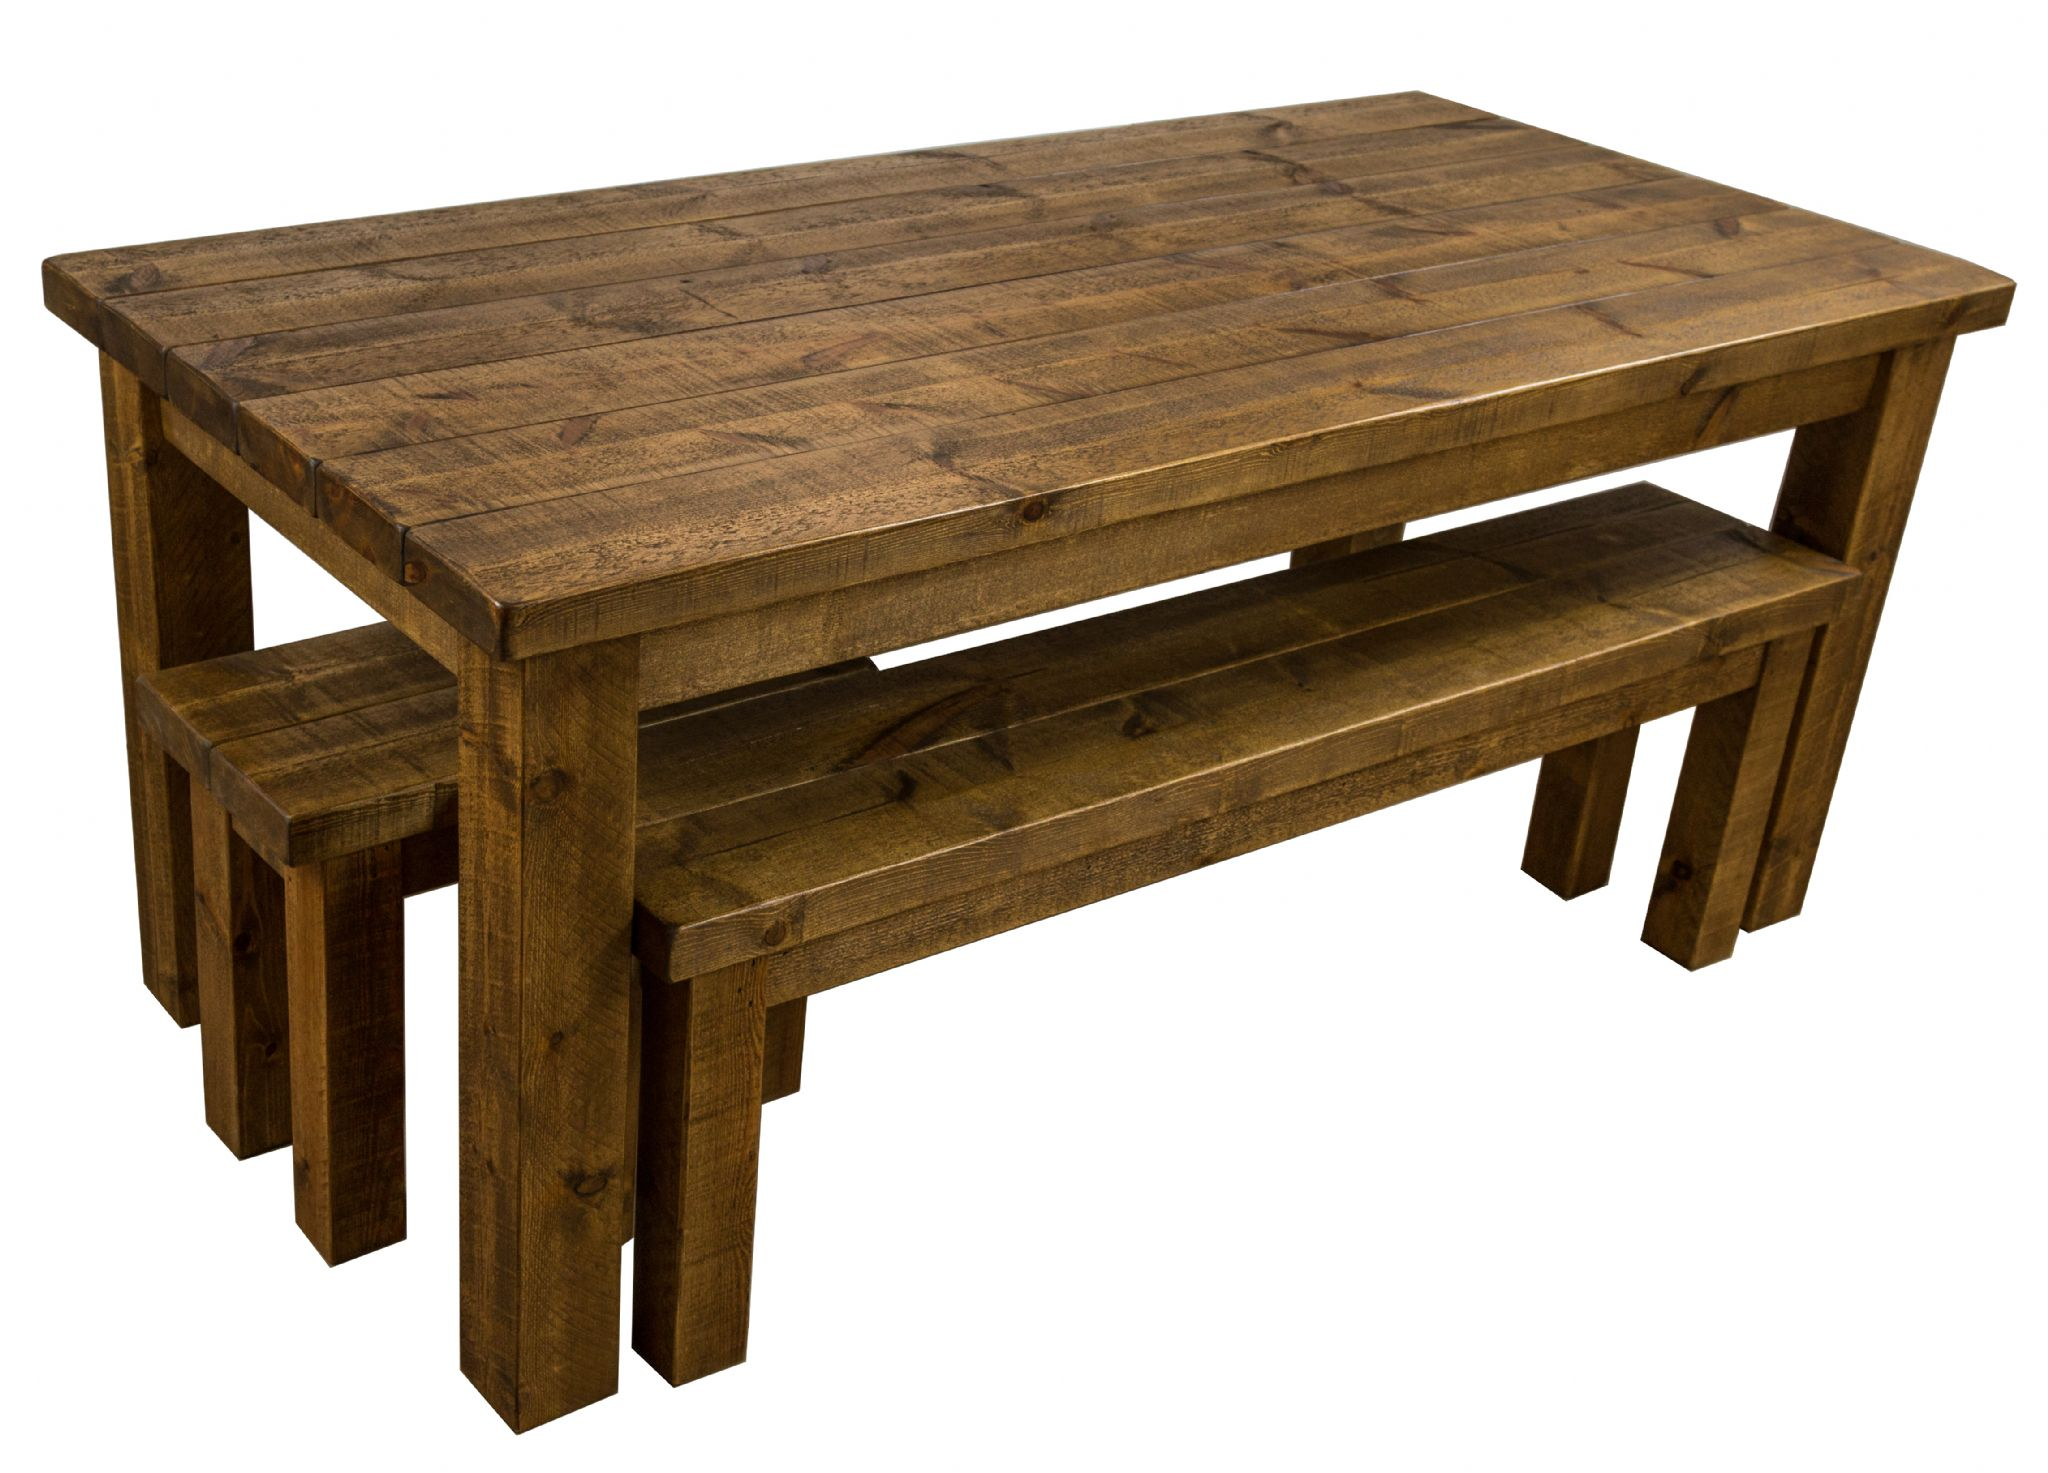 Tortuga Rustic X Wooden Farmhouse Dining Table With Benches - Distressed wood dining table with bench